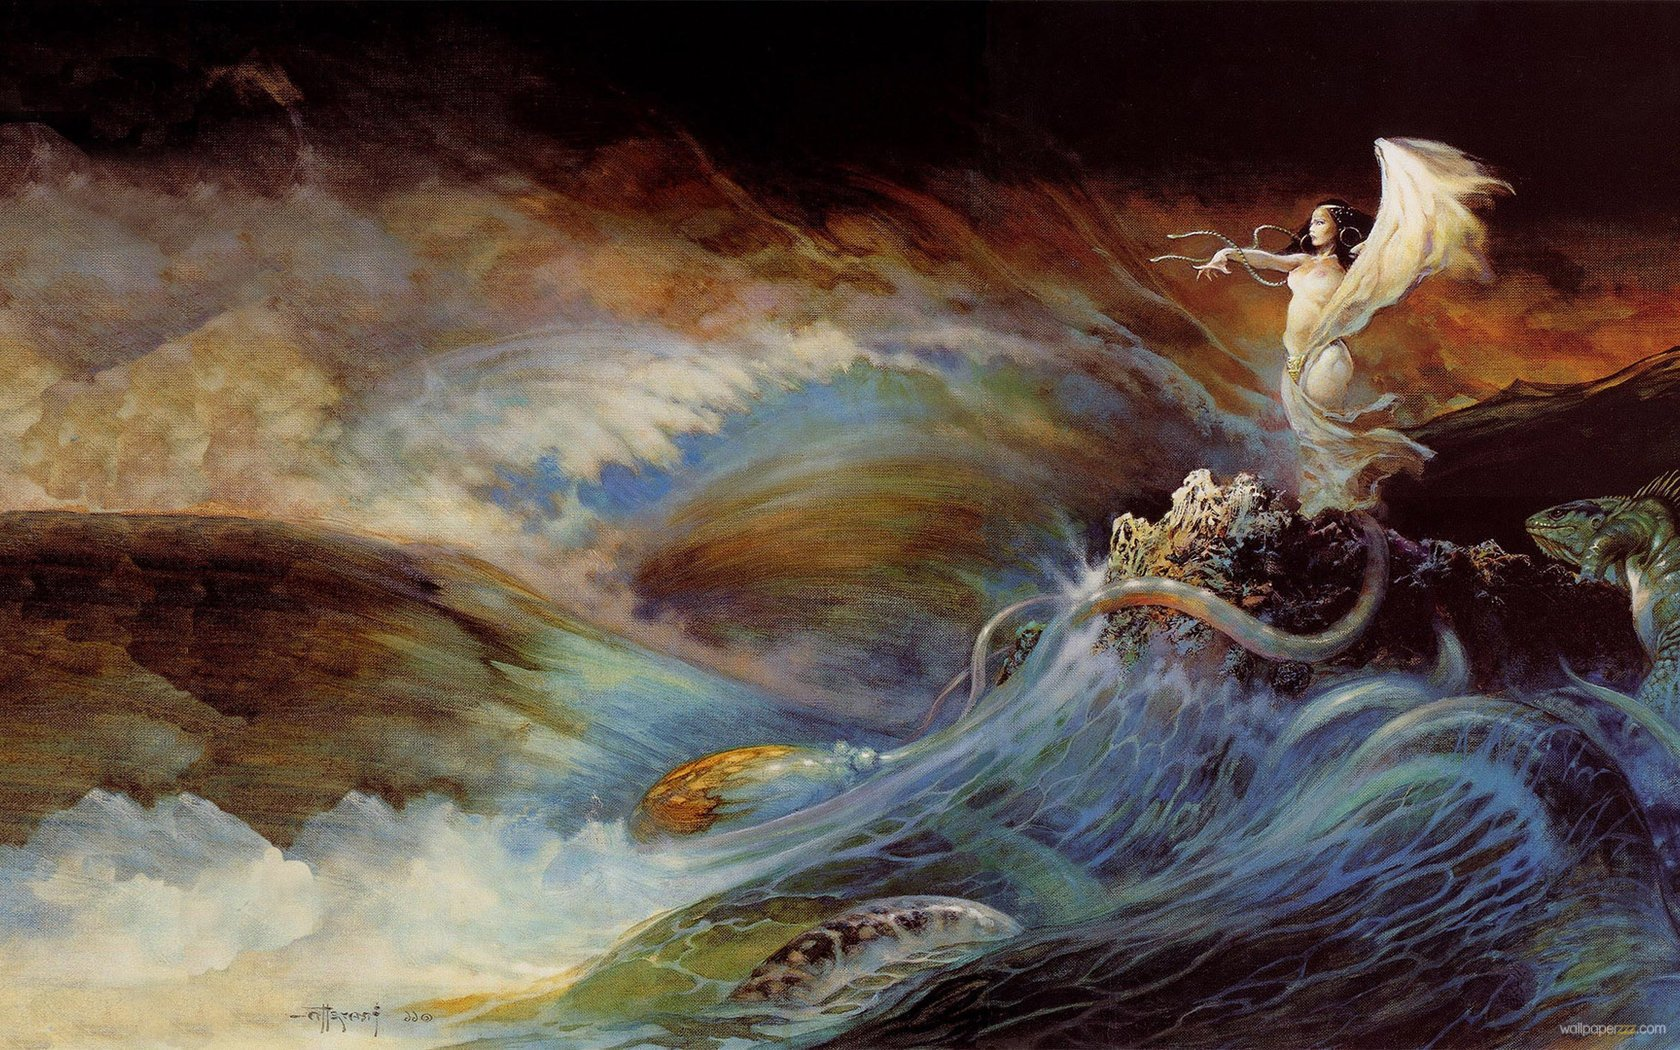 The Sea Witch By Frank Frazetta Widescreen Wallpaper Wallpaper 1680x1050